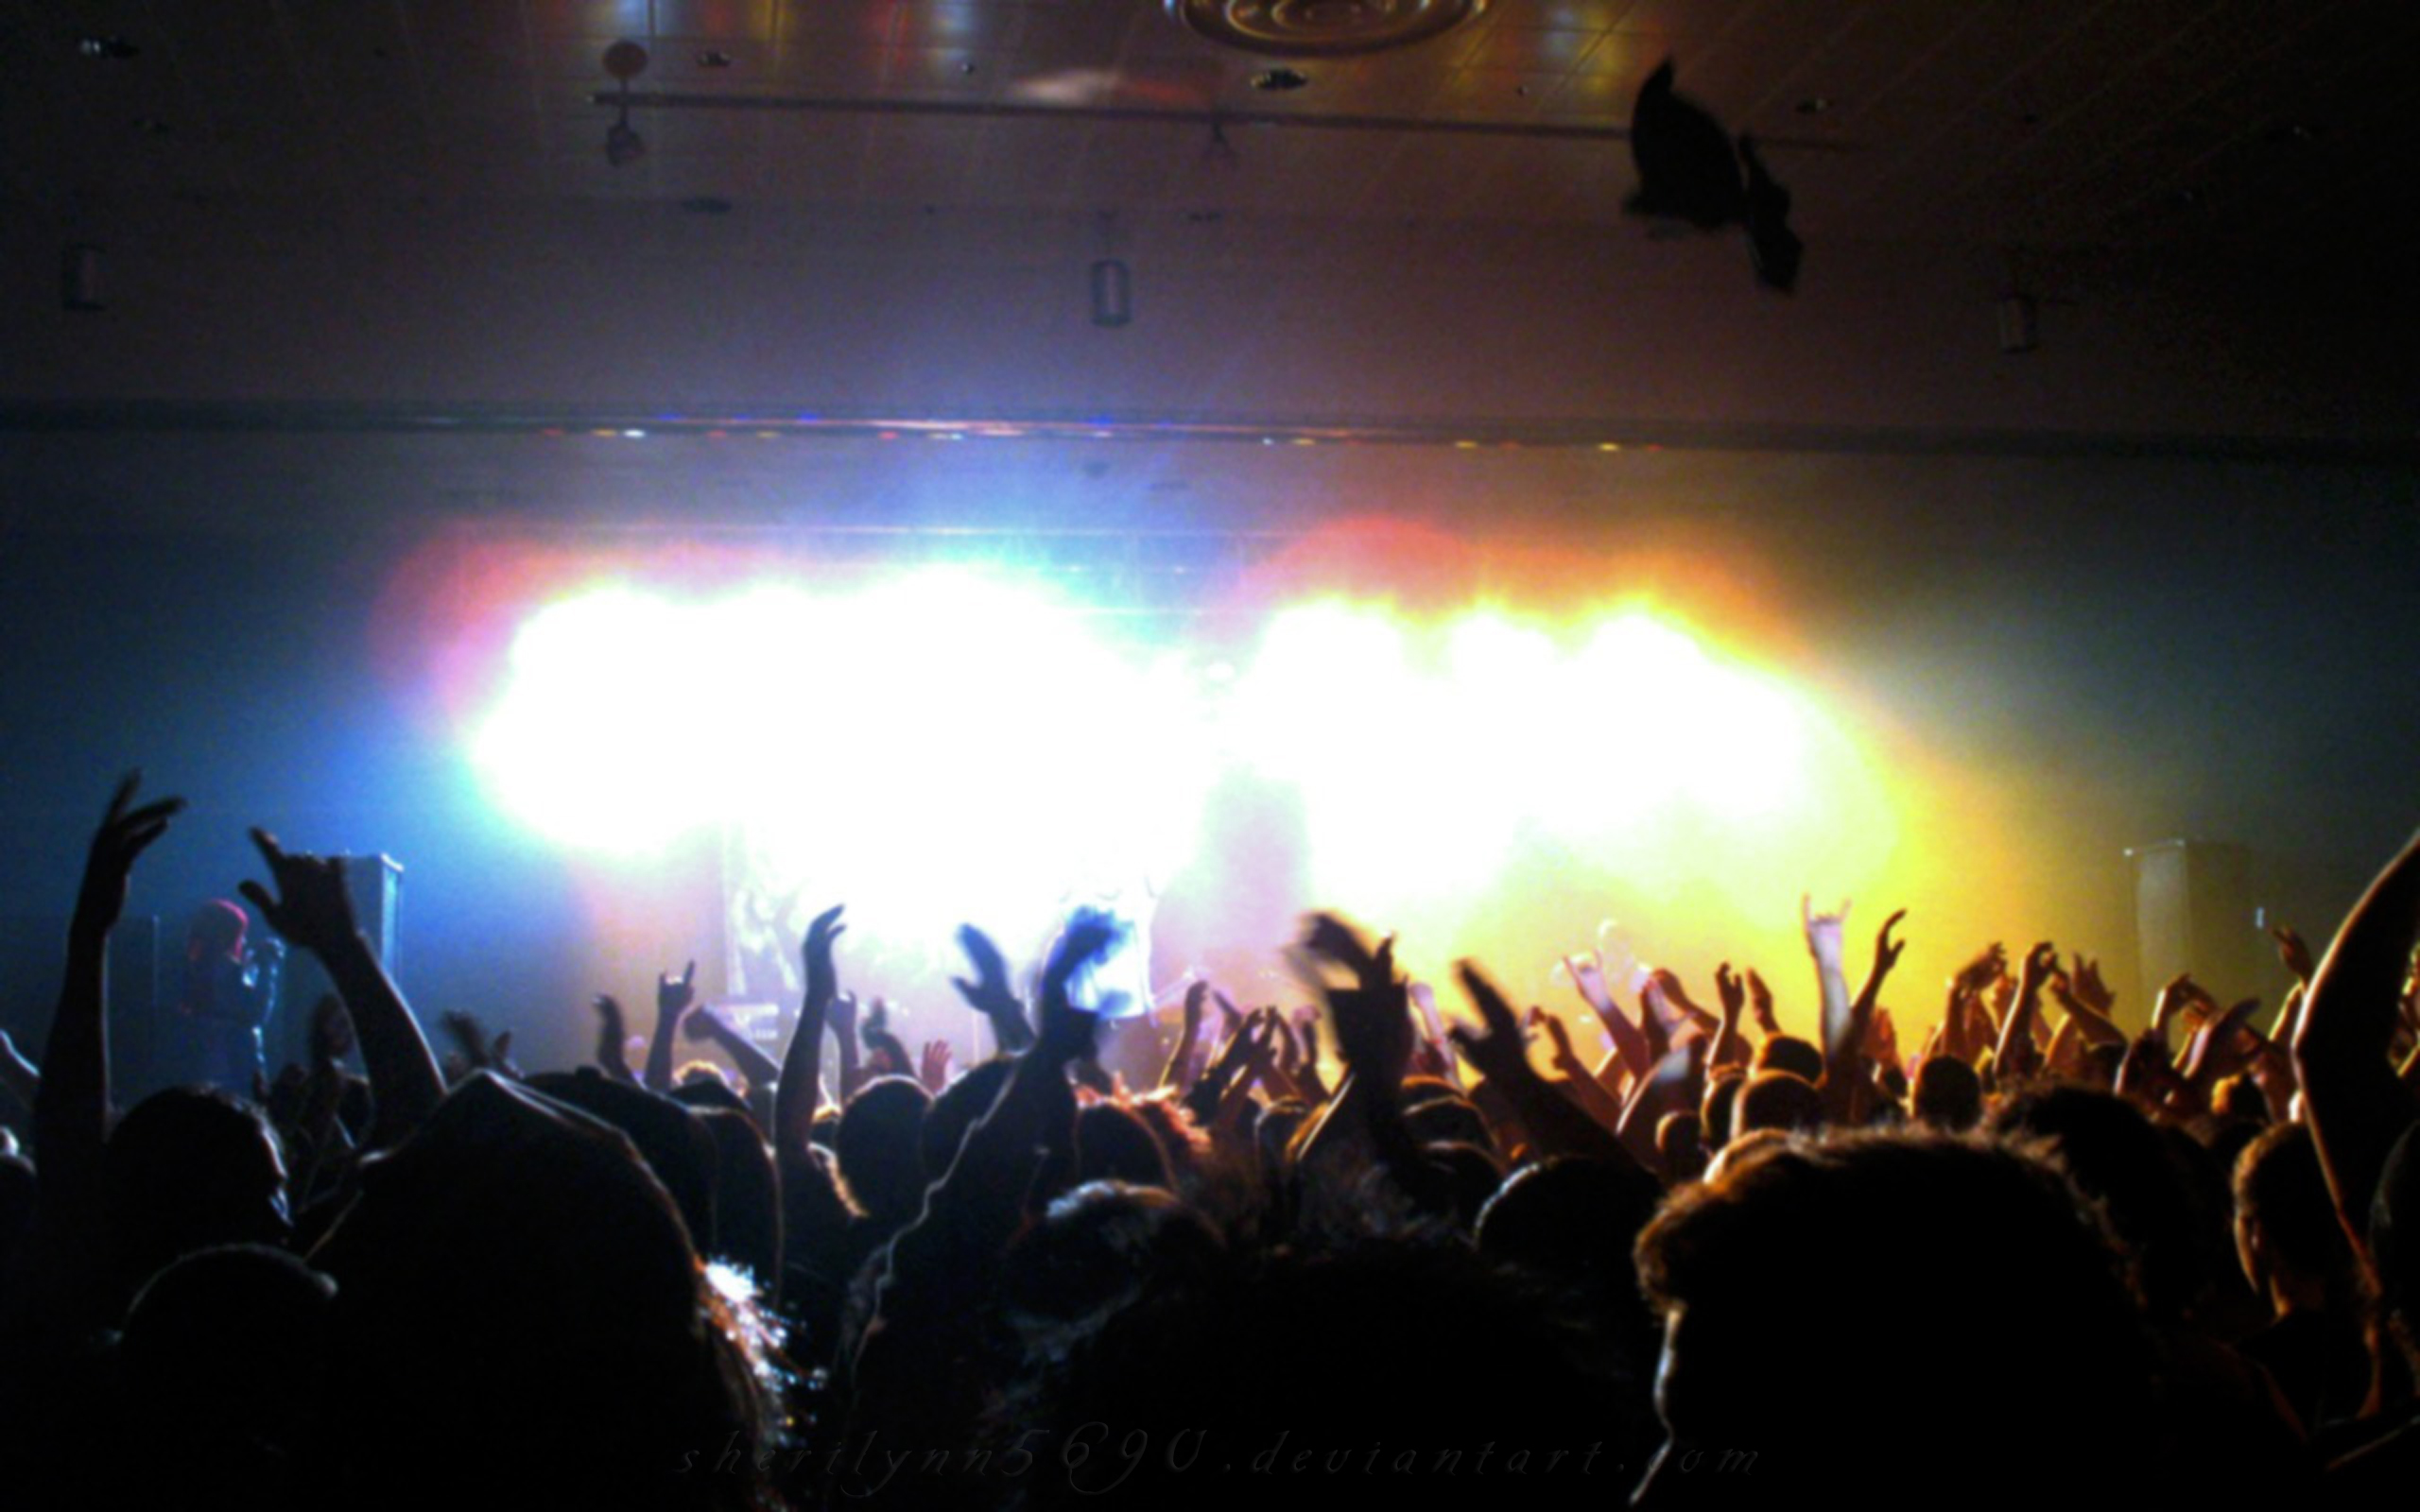 concert | Canadian Freebies, Coupons, Deals, Bargains, Flyers ...